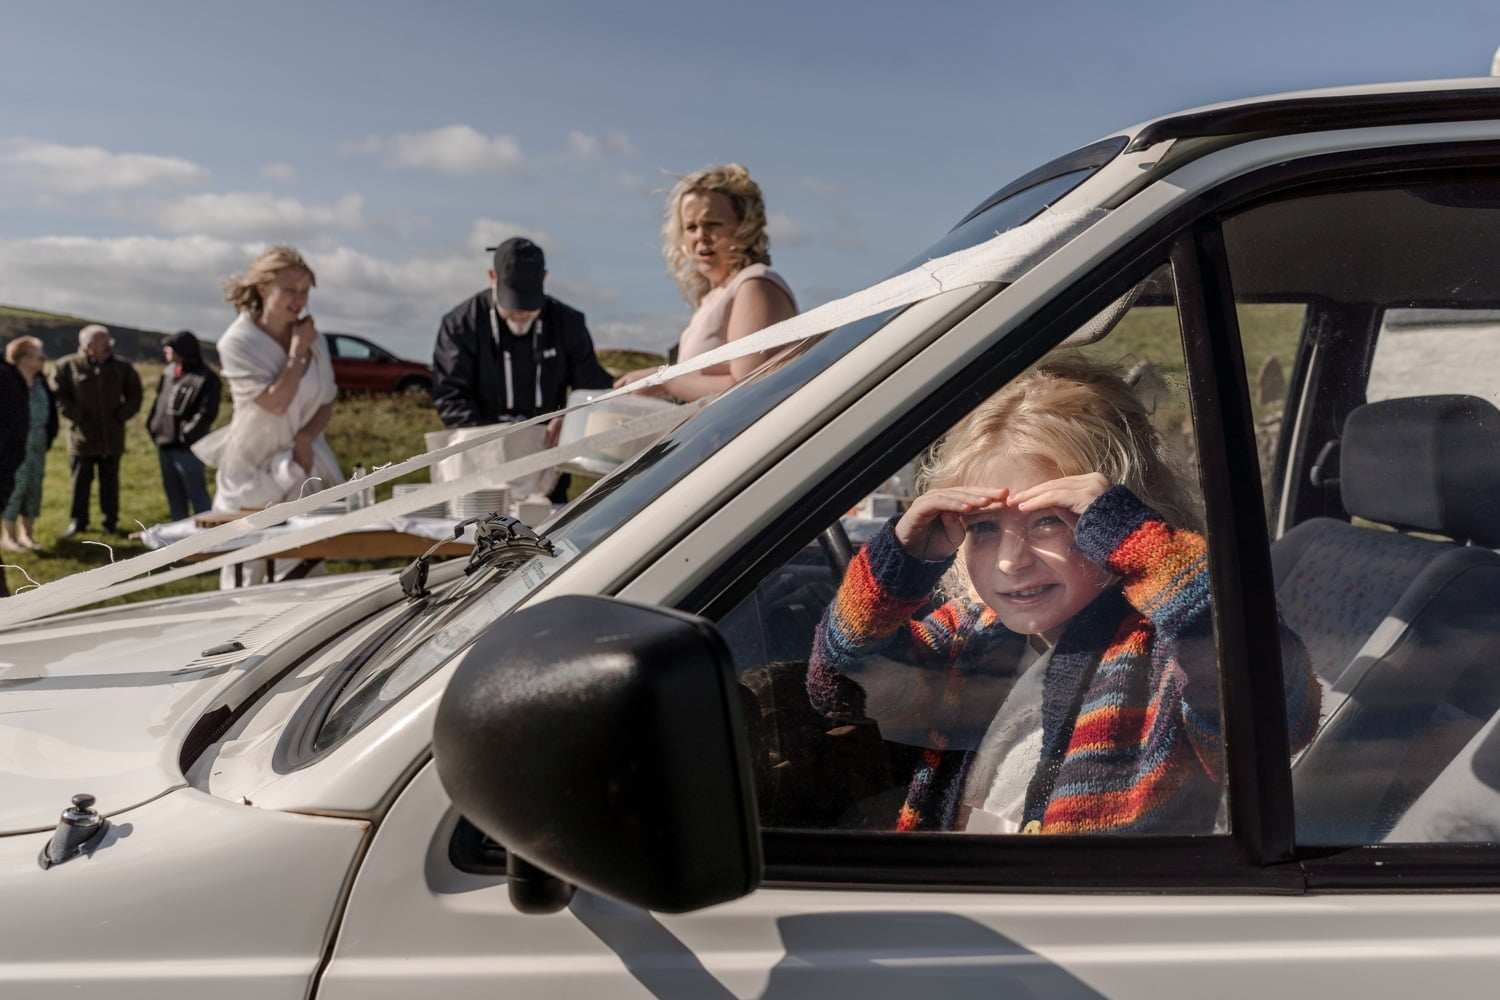 Little girl shelters in car from windy wedding reception at Mwnt Church